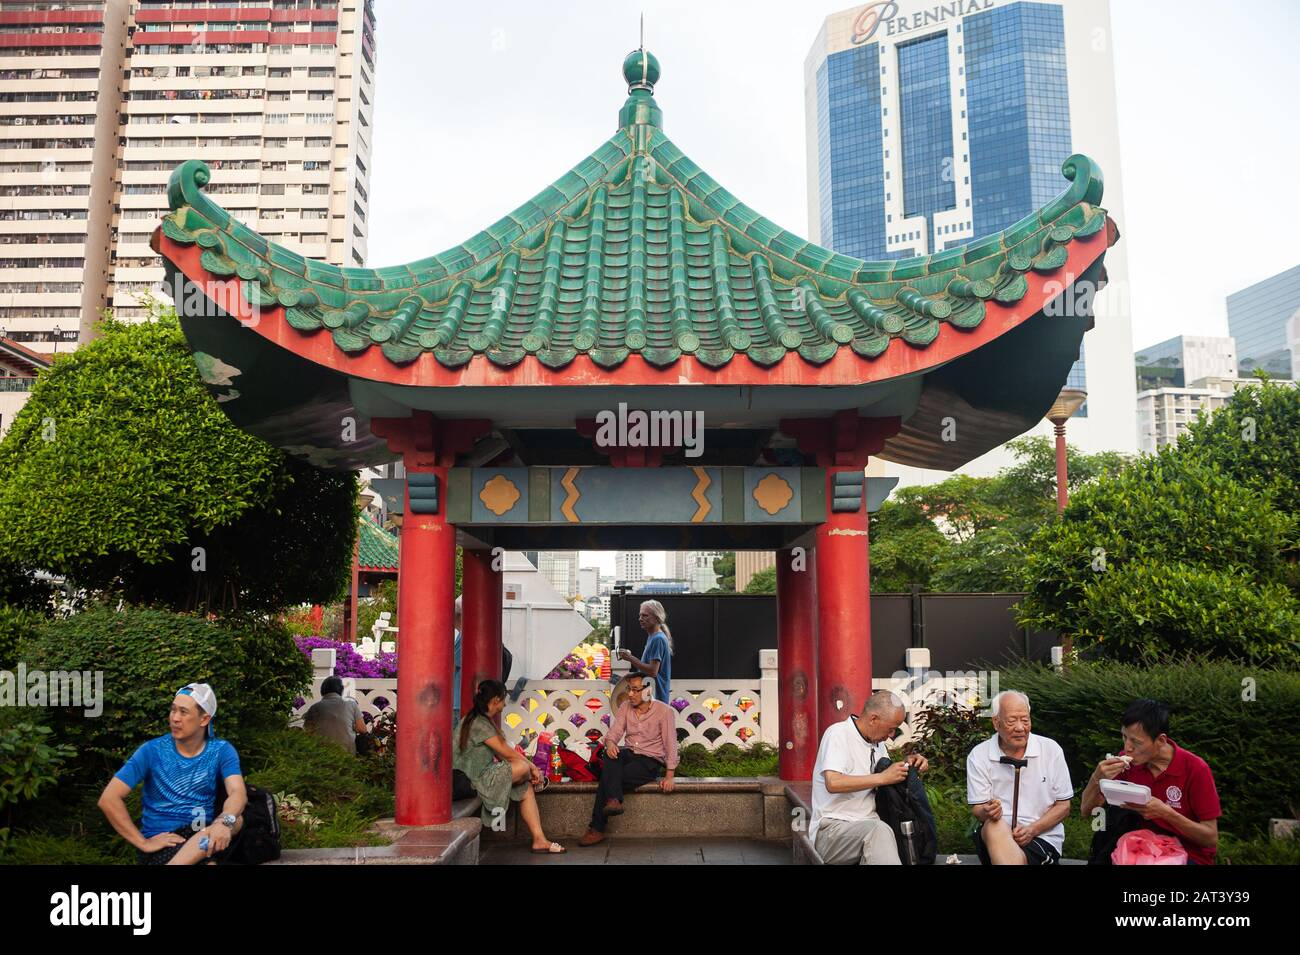 23.01.2020, Singapore, Republic of Singapore, Asia - People sit under a roof in the shape of a pagoda in a small public park in Chinatown. Stock Photo